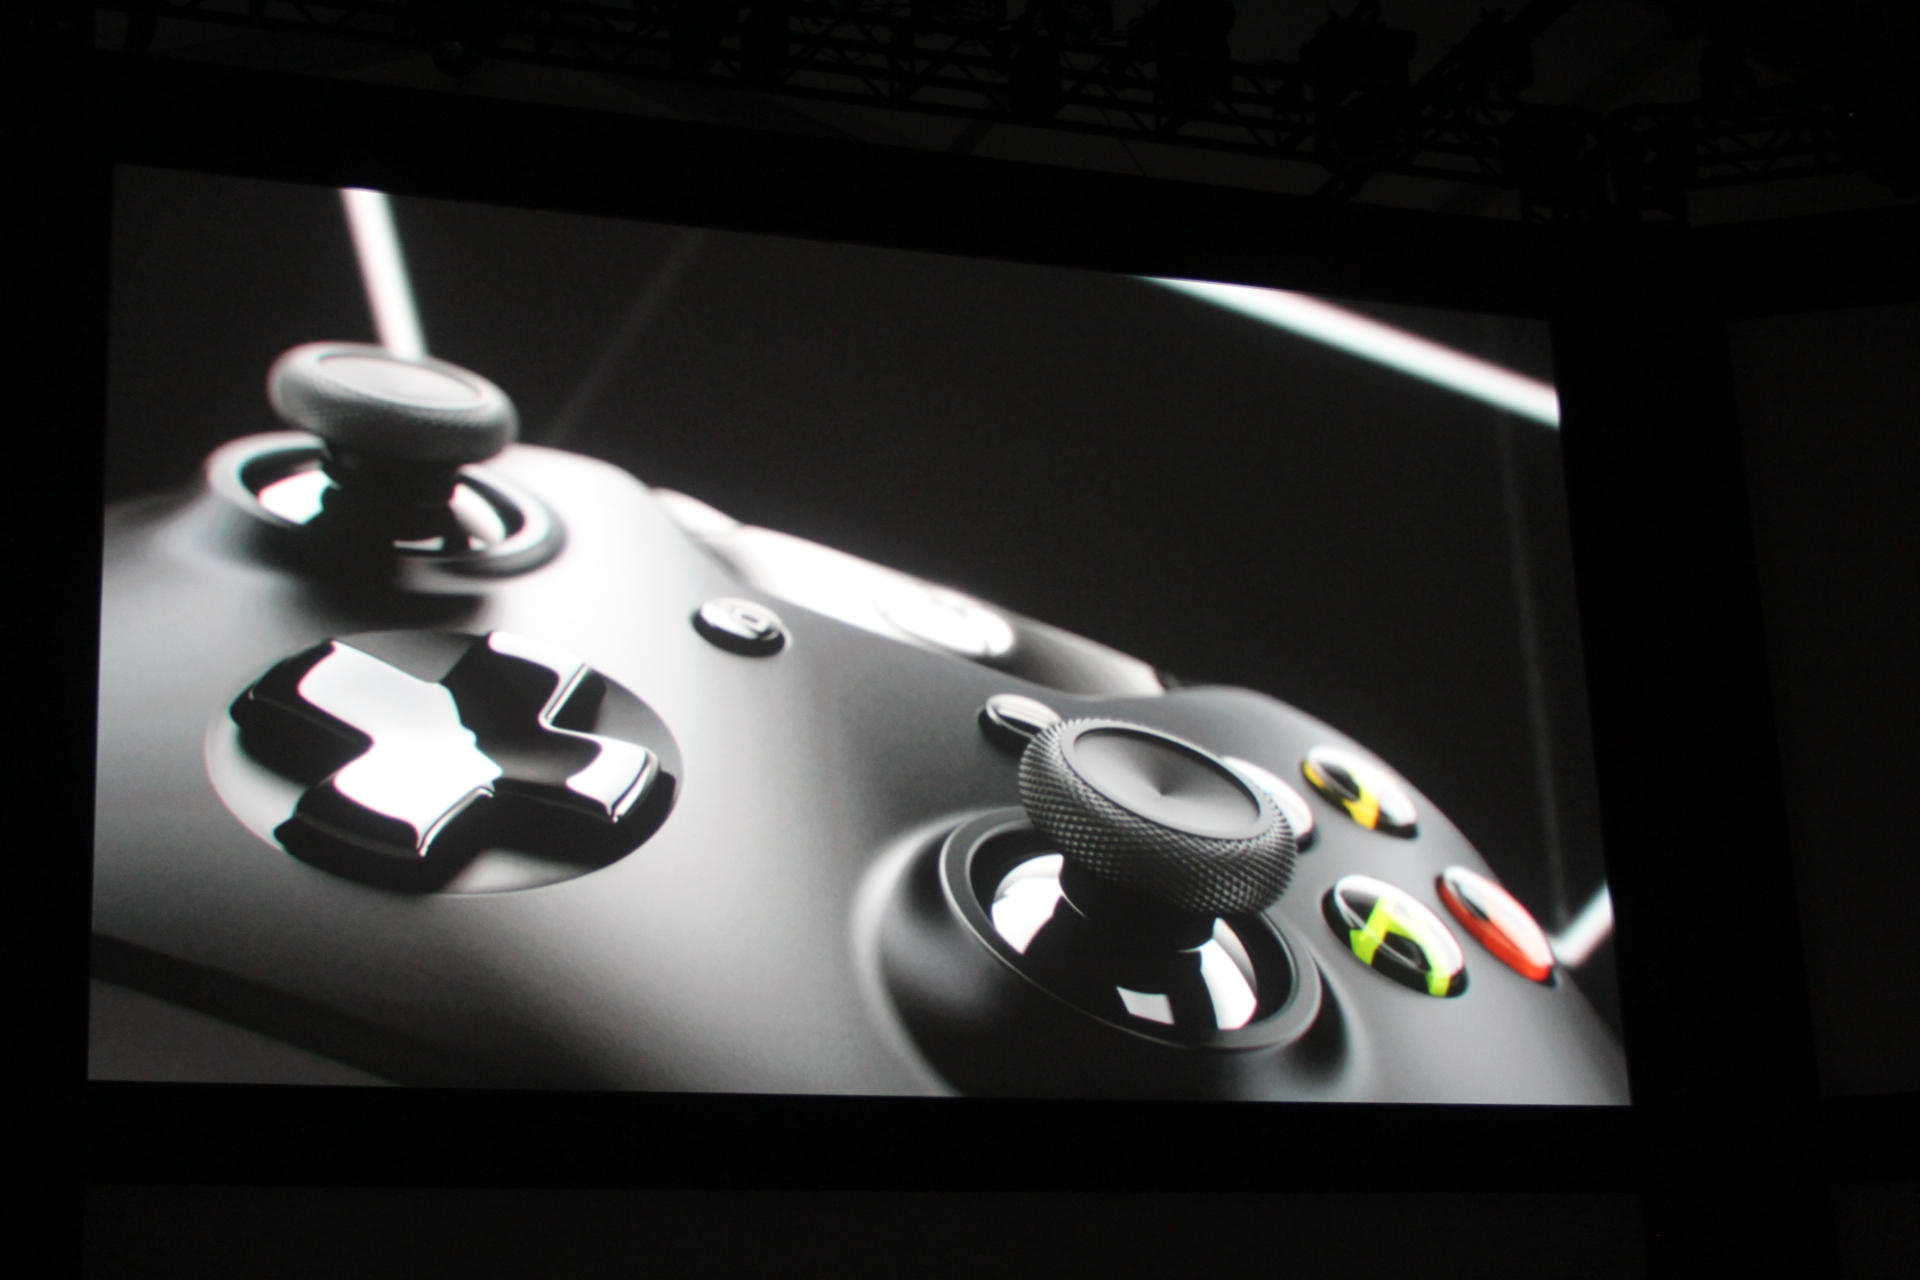 0015 Microsoft introduces new controller for Xbox One console with redesigned d pad